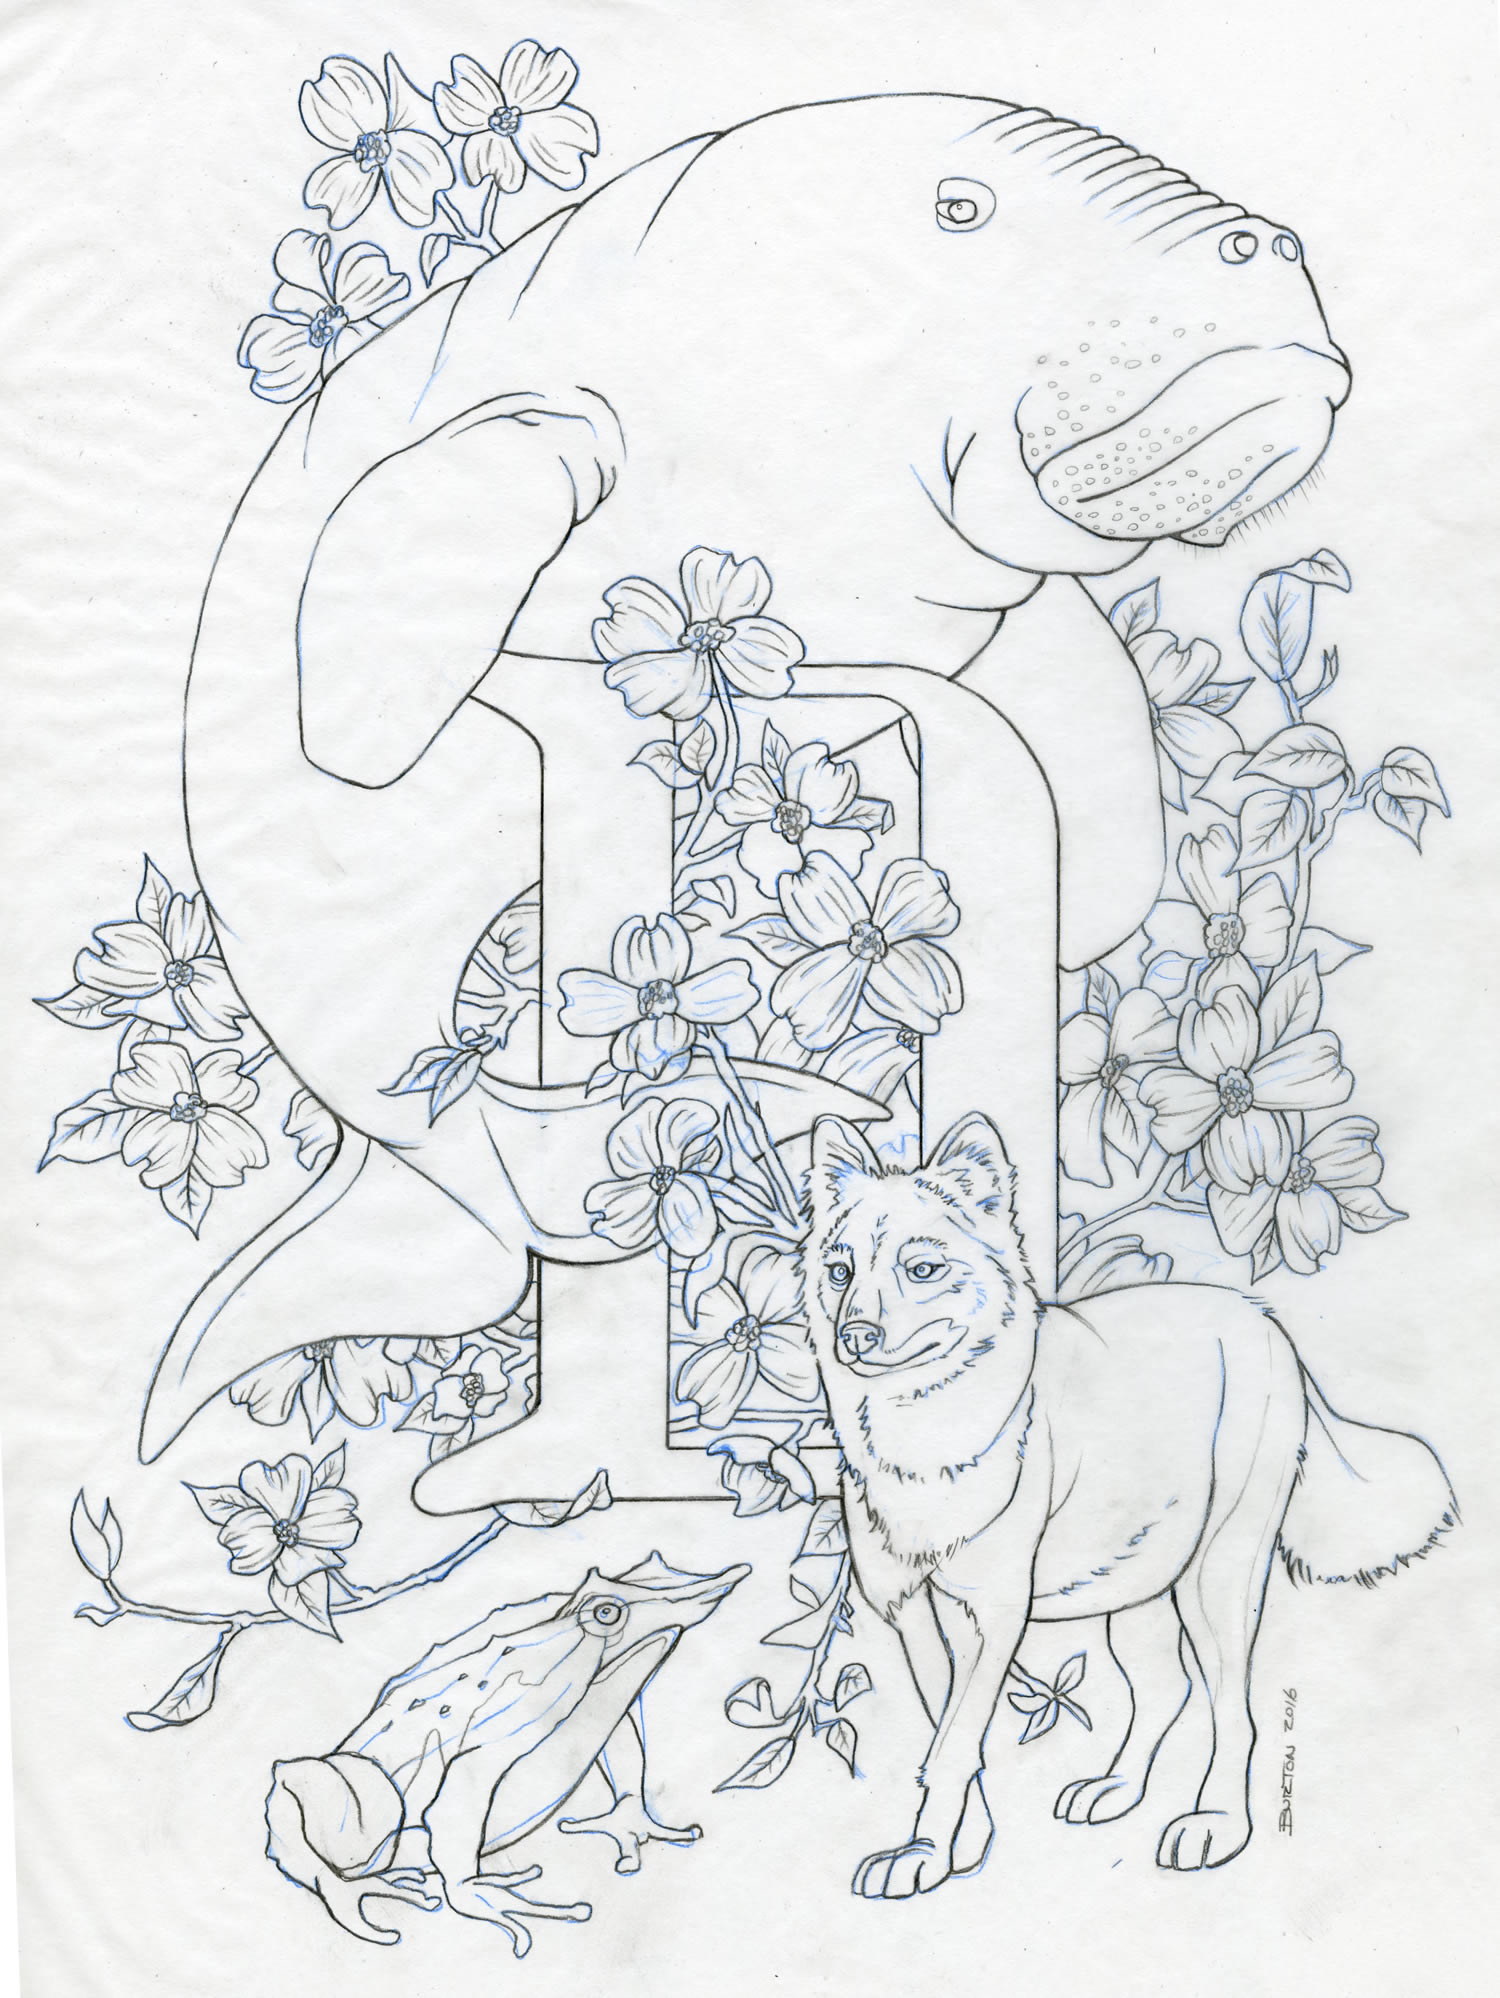 Letter D layout sketch